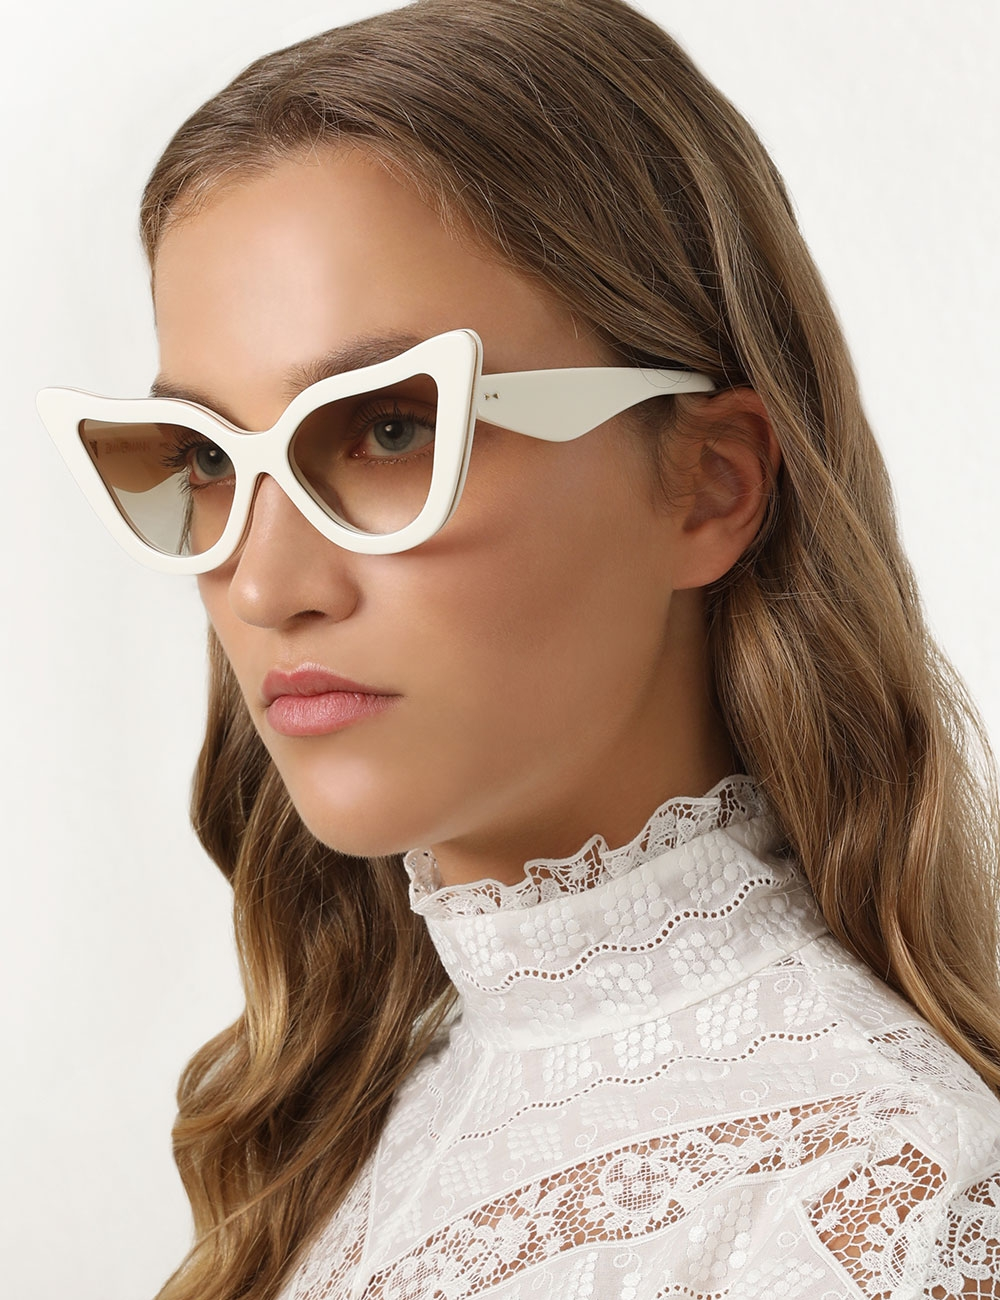 Paisley Sunglasses